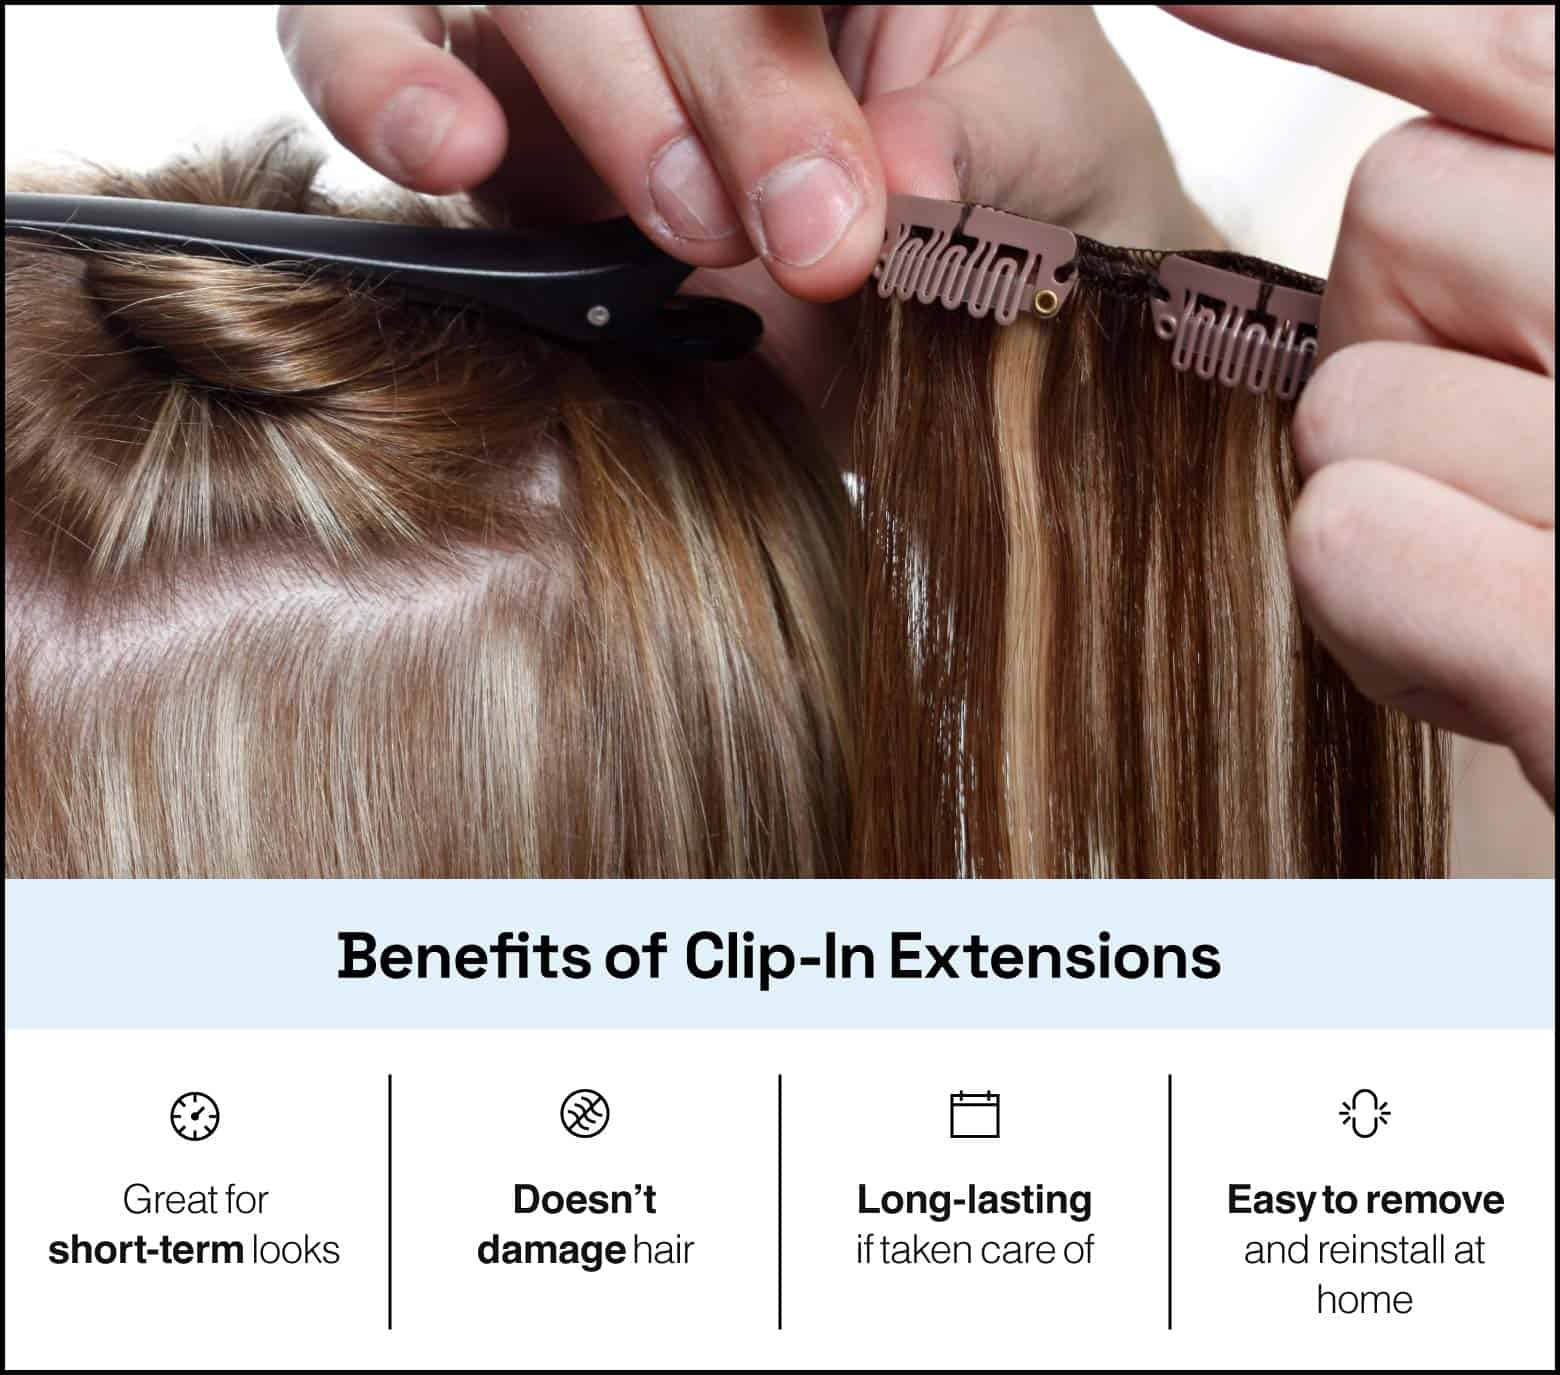 benefits of clip-in extensions